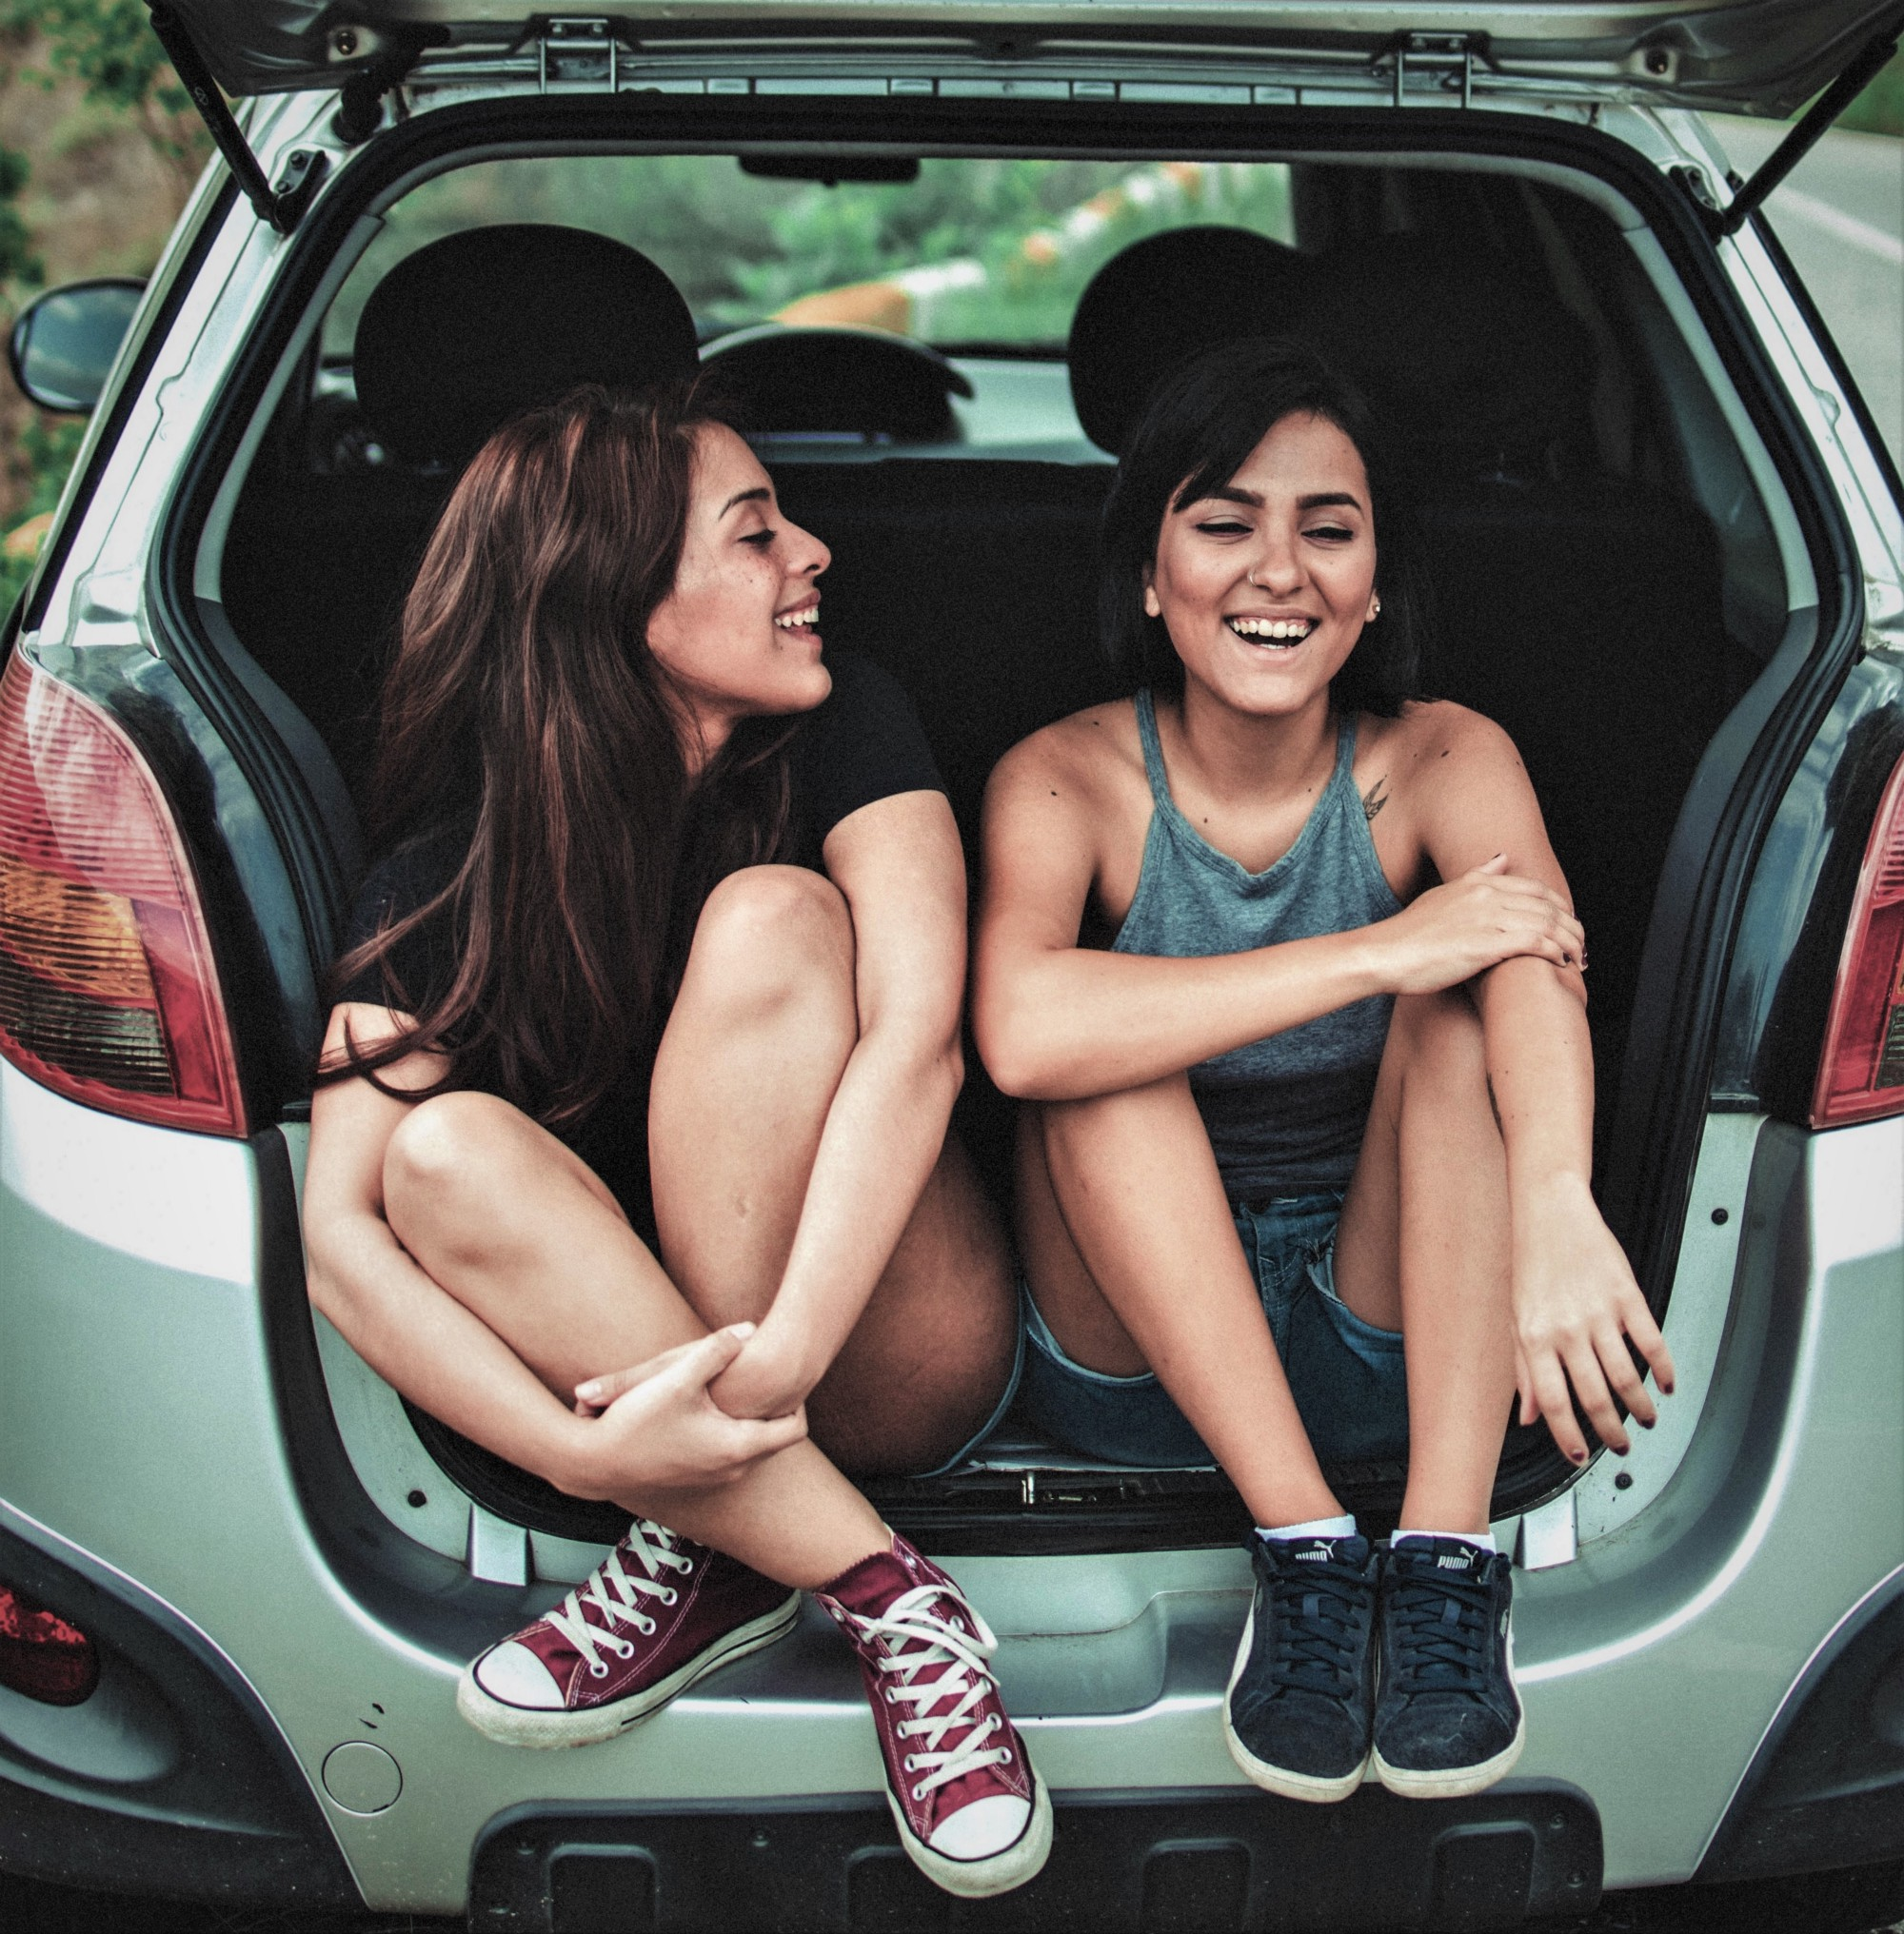 two smiling girls with brown hair sitting in open back of car